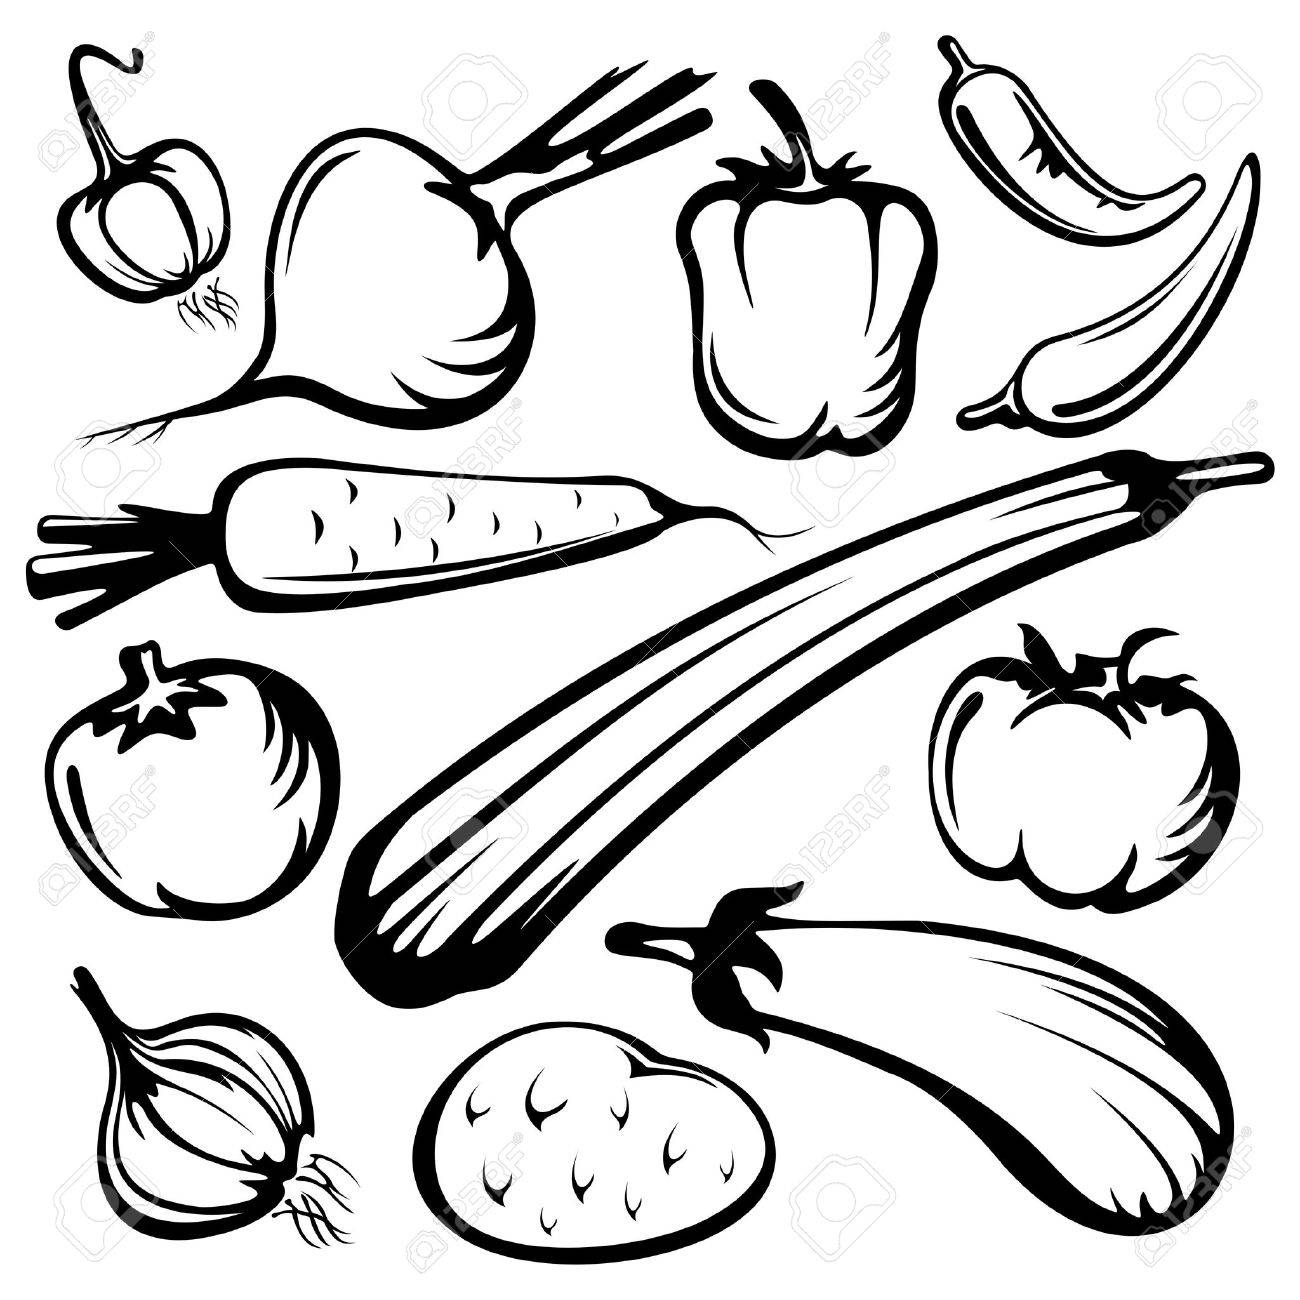 stylized vegetables set silhouettes isolated on a white background